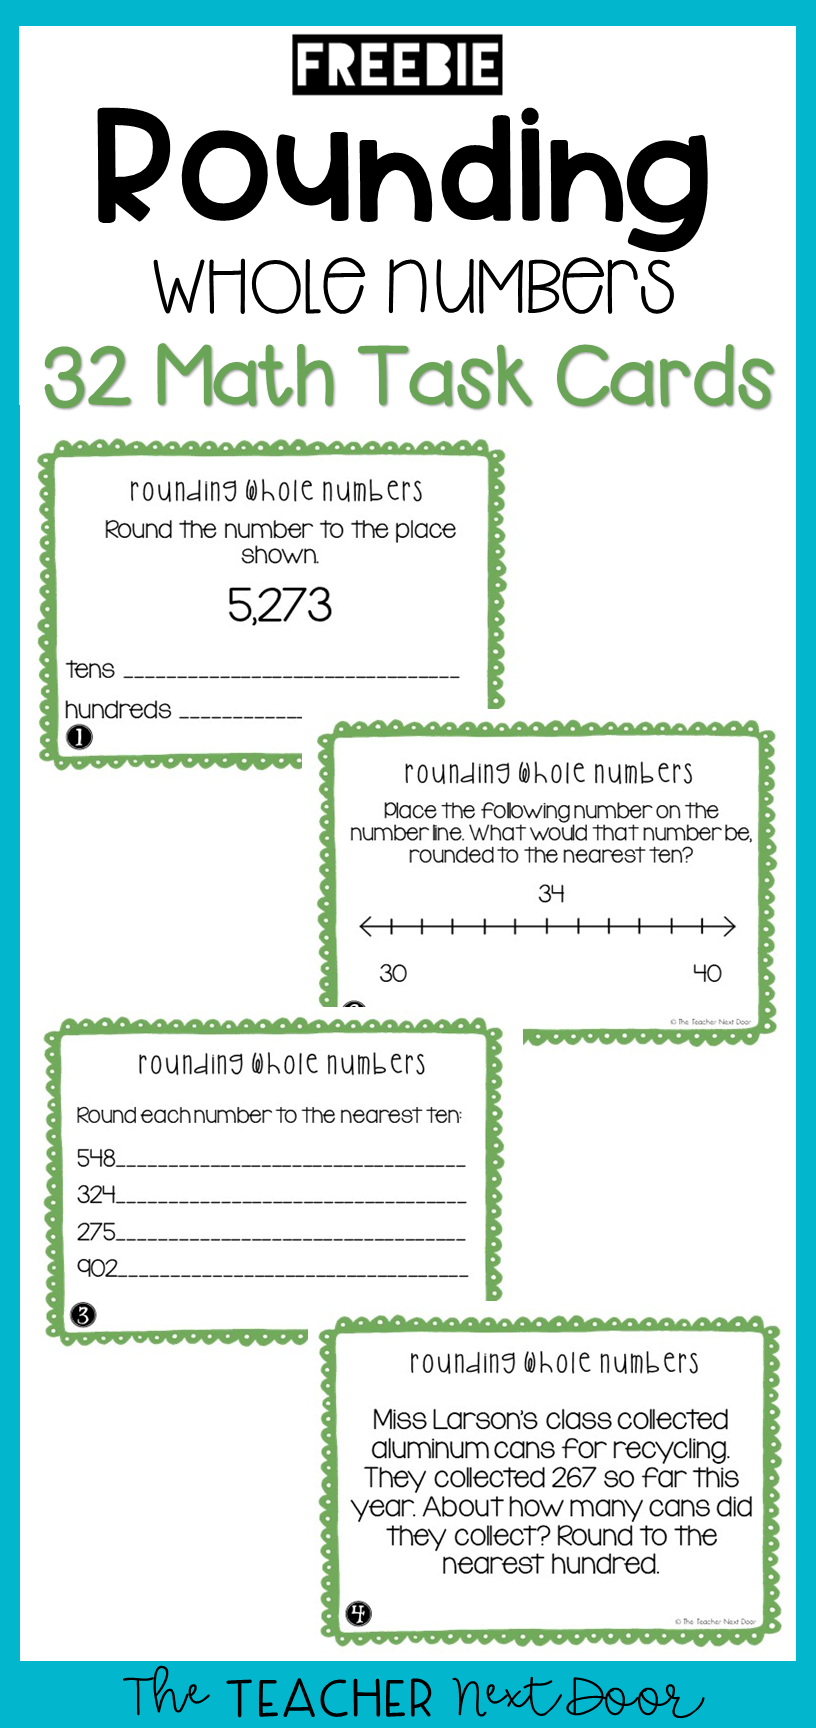 Free Rounding Whole Numbers Task Cards For 3rd Grade Rounding Whole Numbers Rounding Math Centers Math Task Cards [ 1728 x 816 Pixel ]